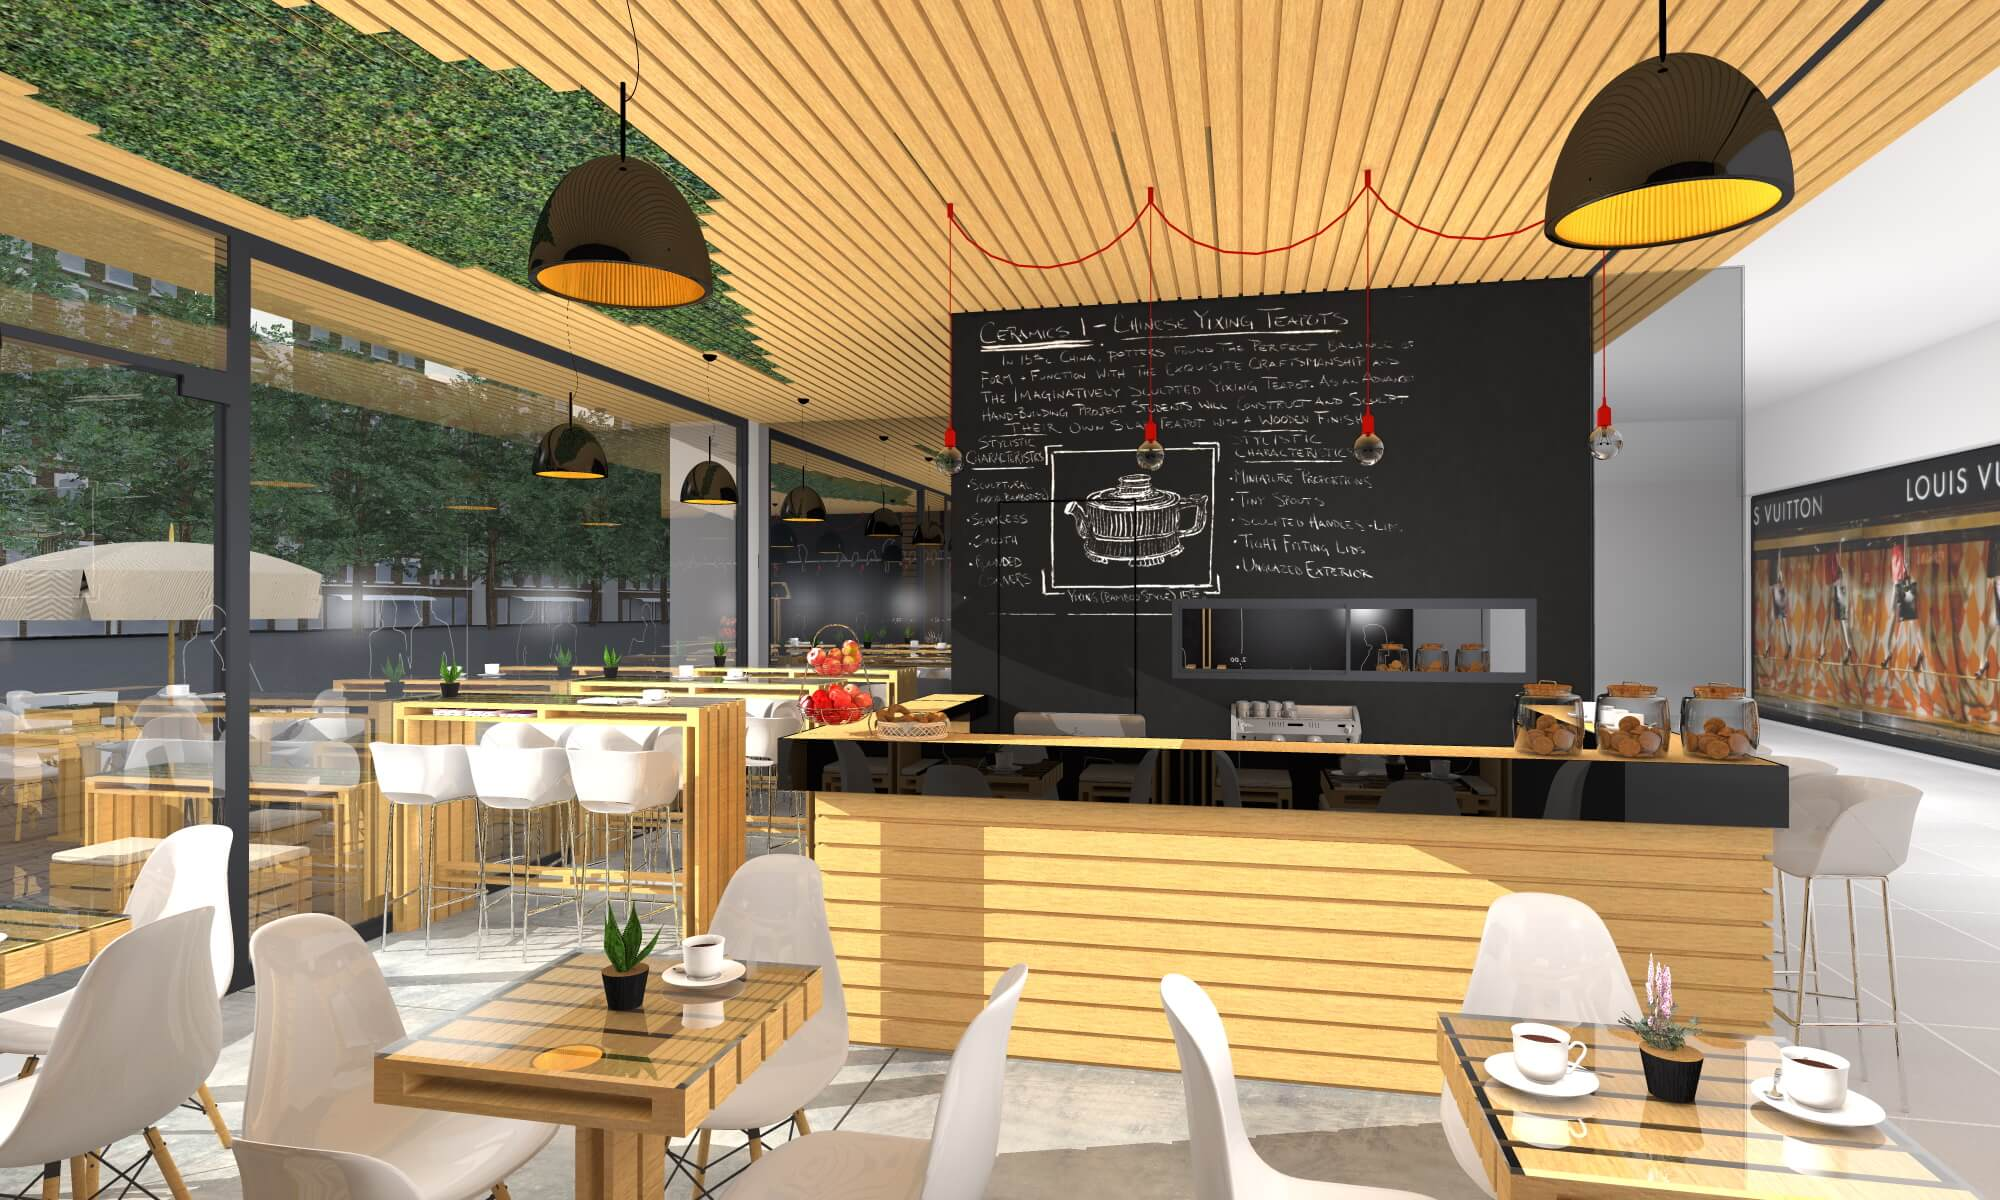 30 Coffee Shop Interior Design Ideas [Update List 2018] - Live Enhanced